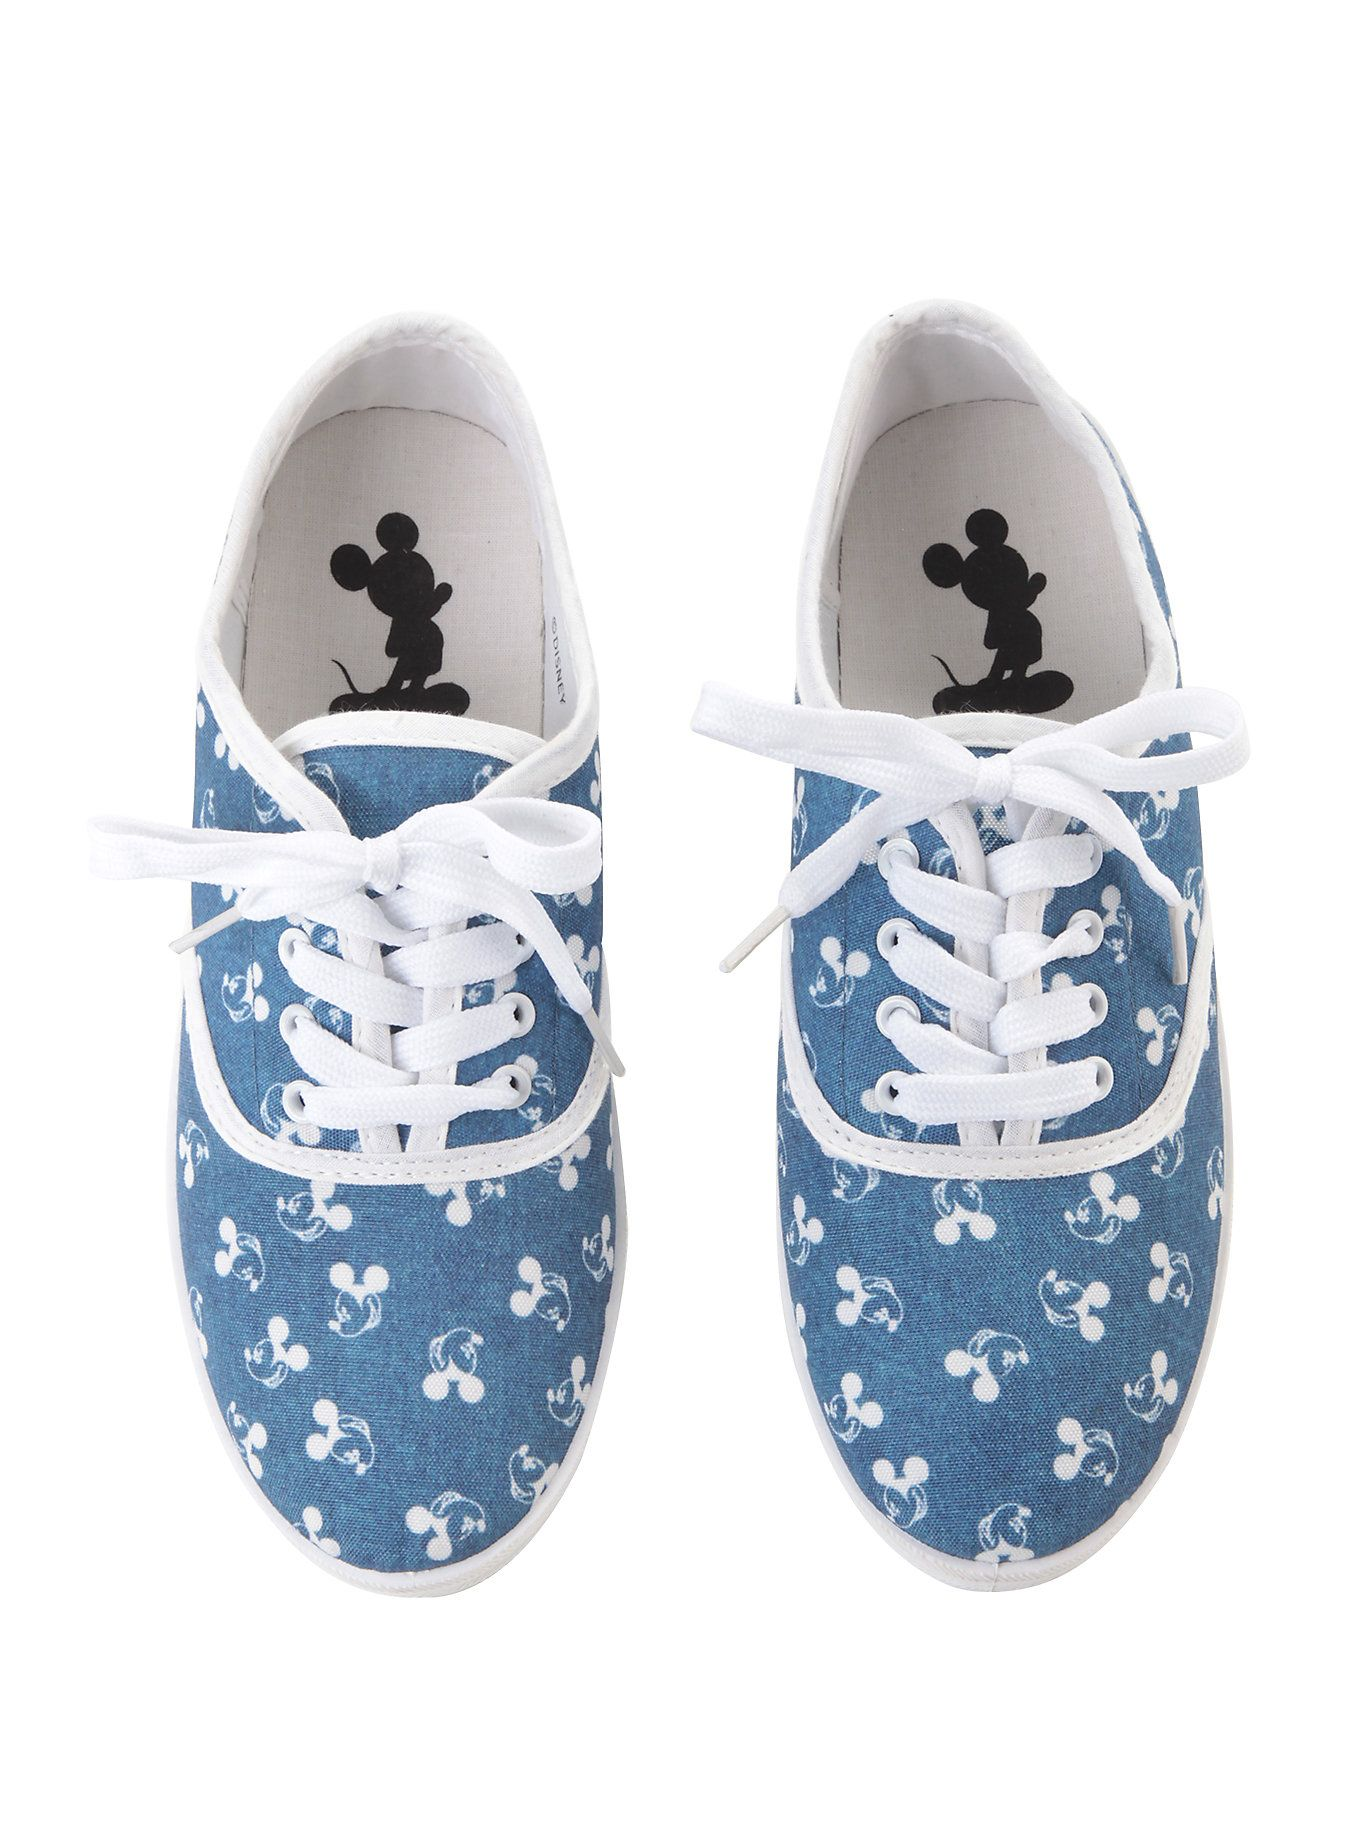 Disney Mickey Mouse lace-up sneakers from Hot Topic